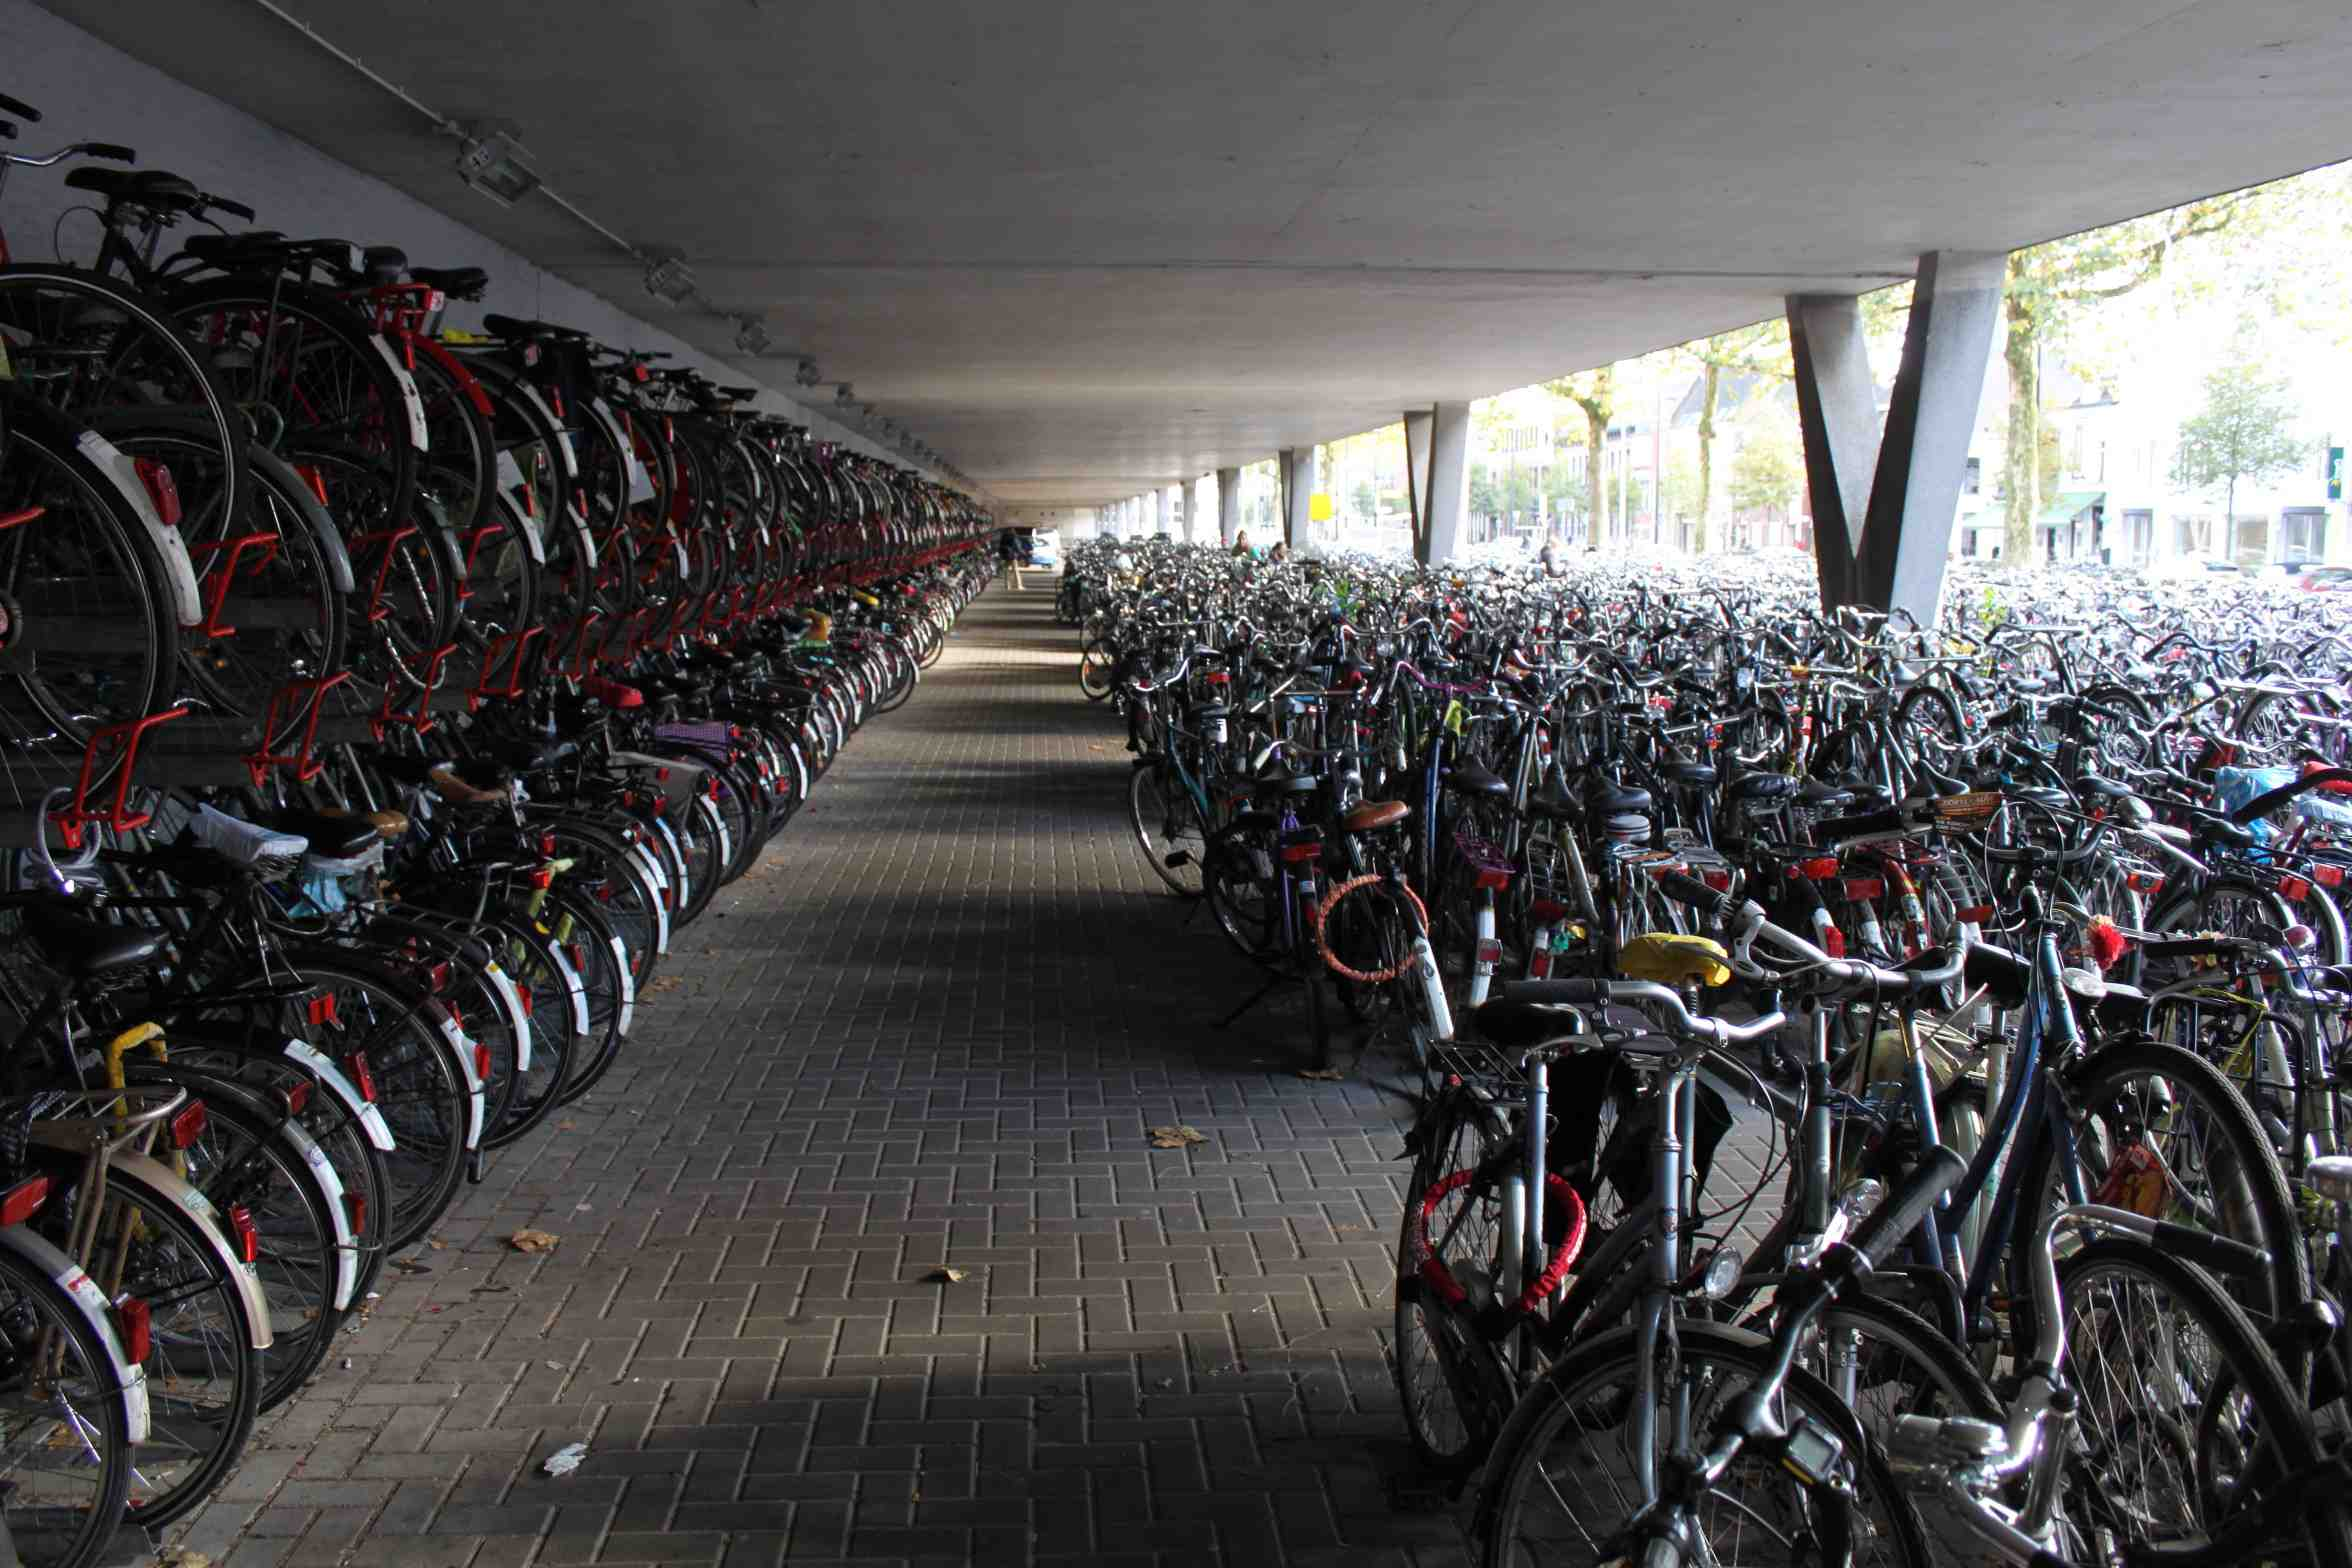 Bicycles outside of the main Tilburg train station